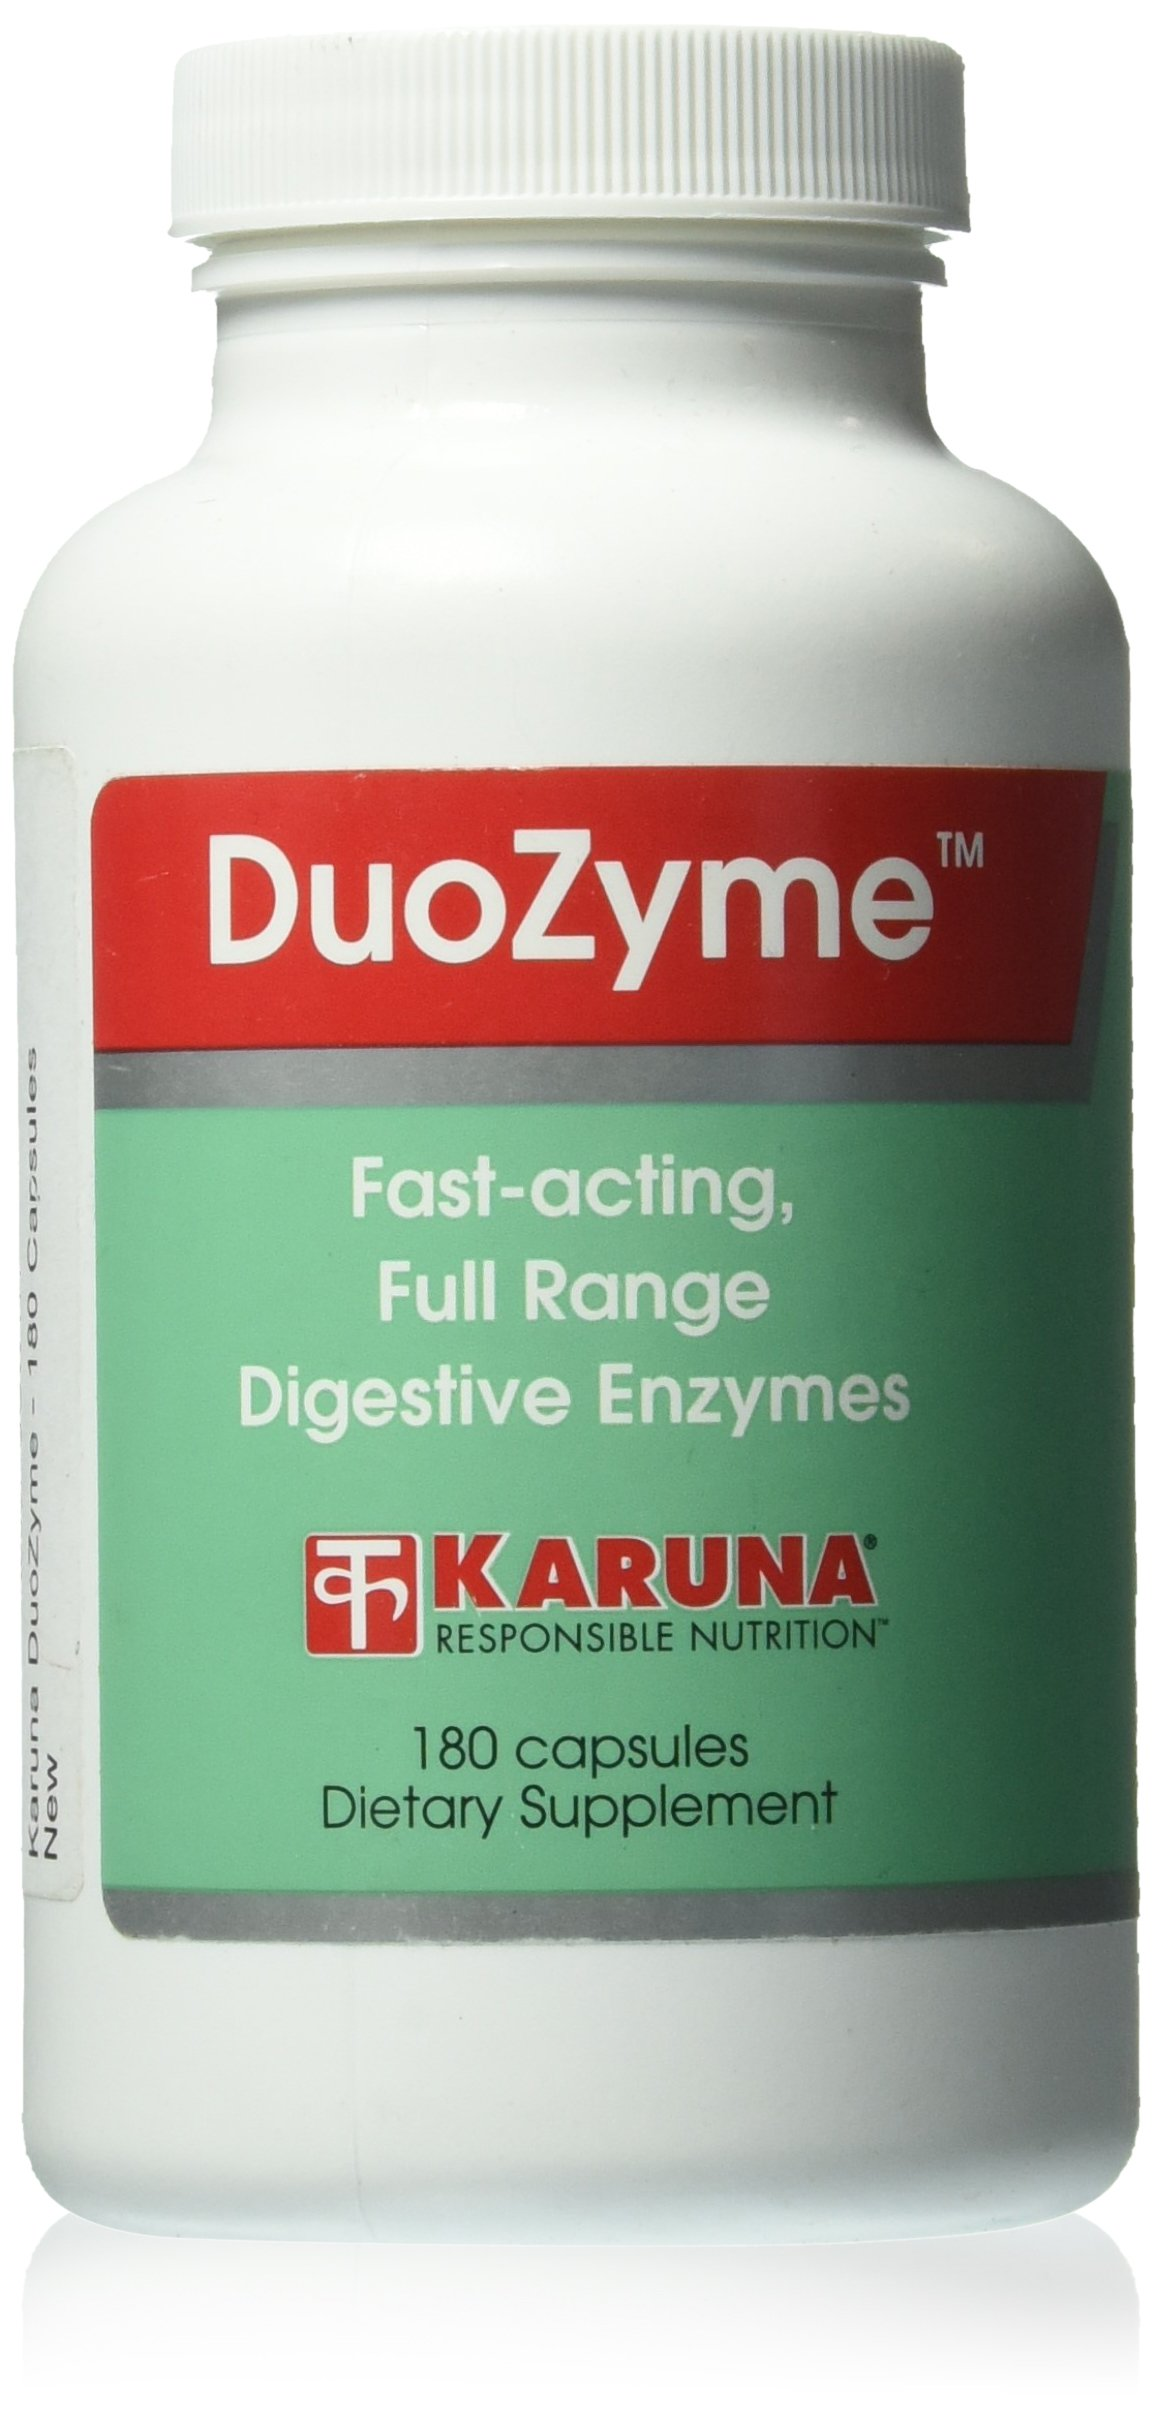 Karuna - DuoZyme 180 caps [Health and Beauty]